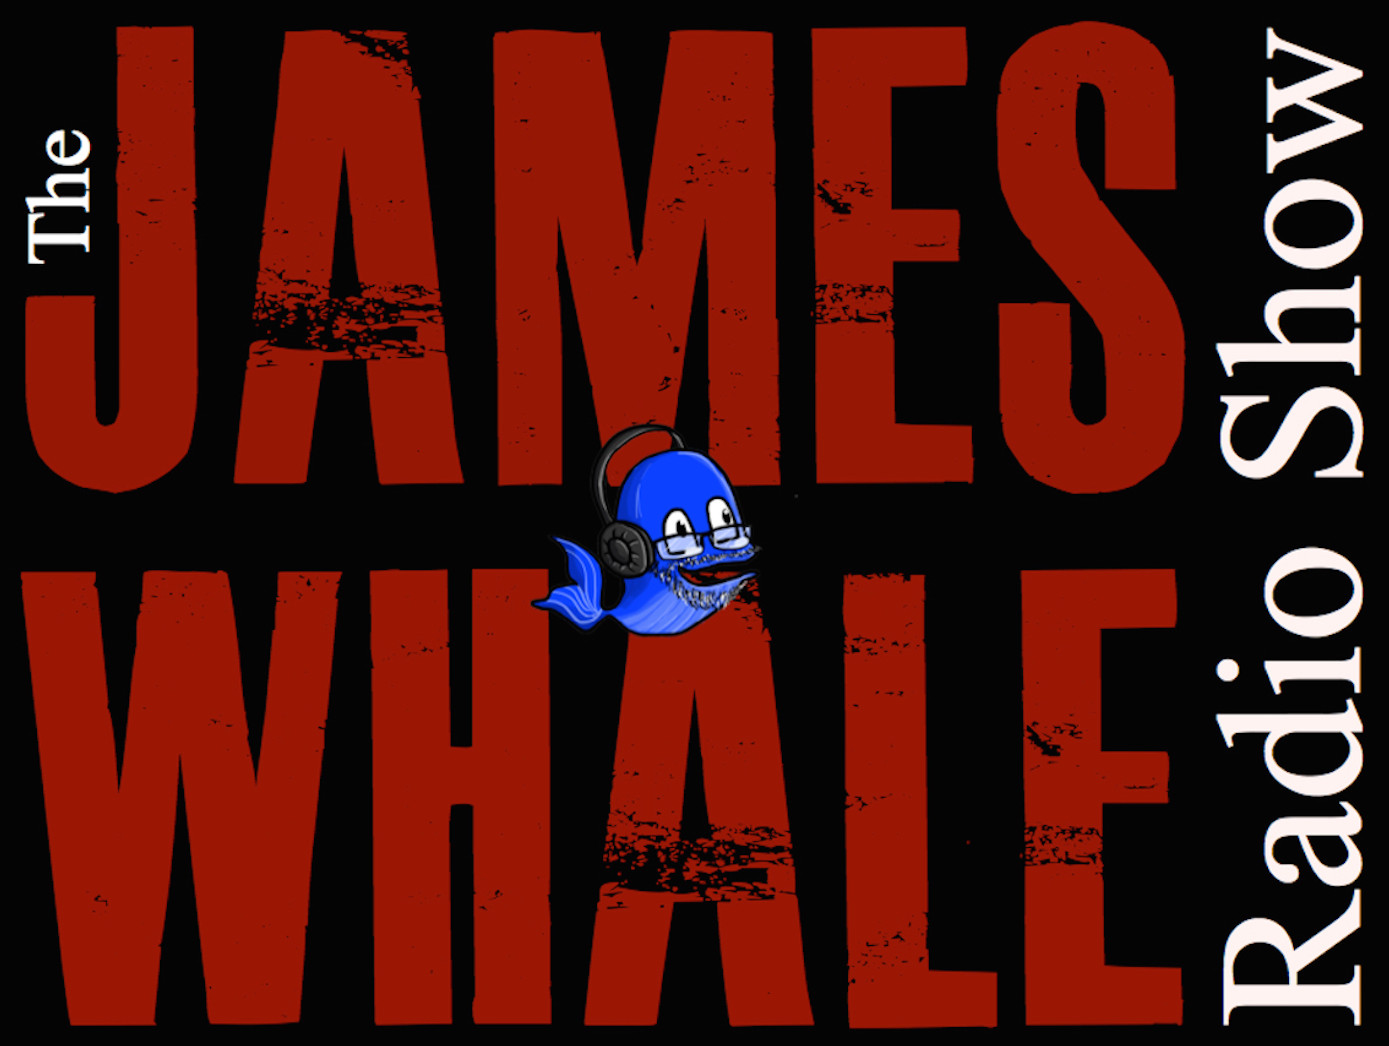 james-whale-large-logo1-1